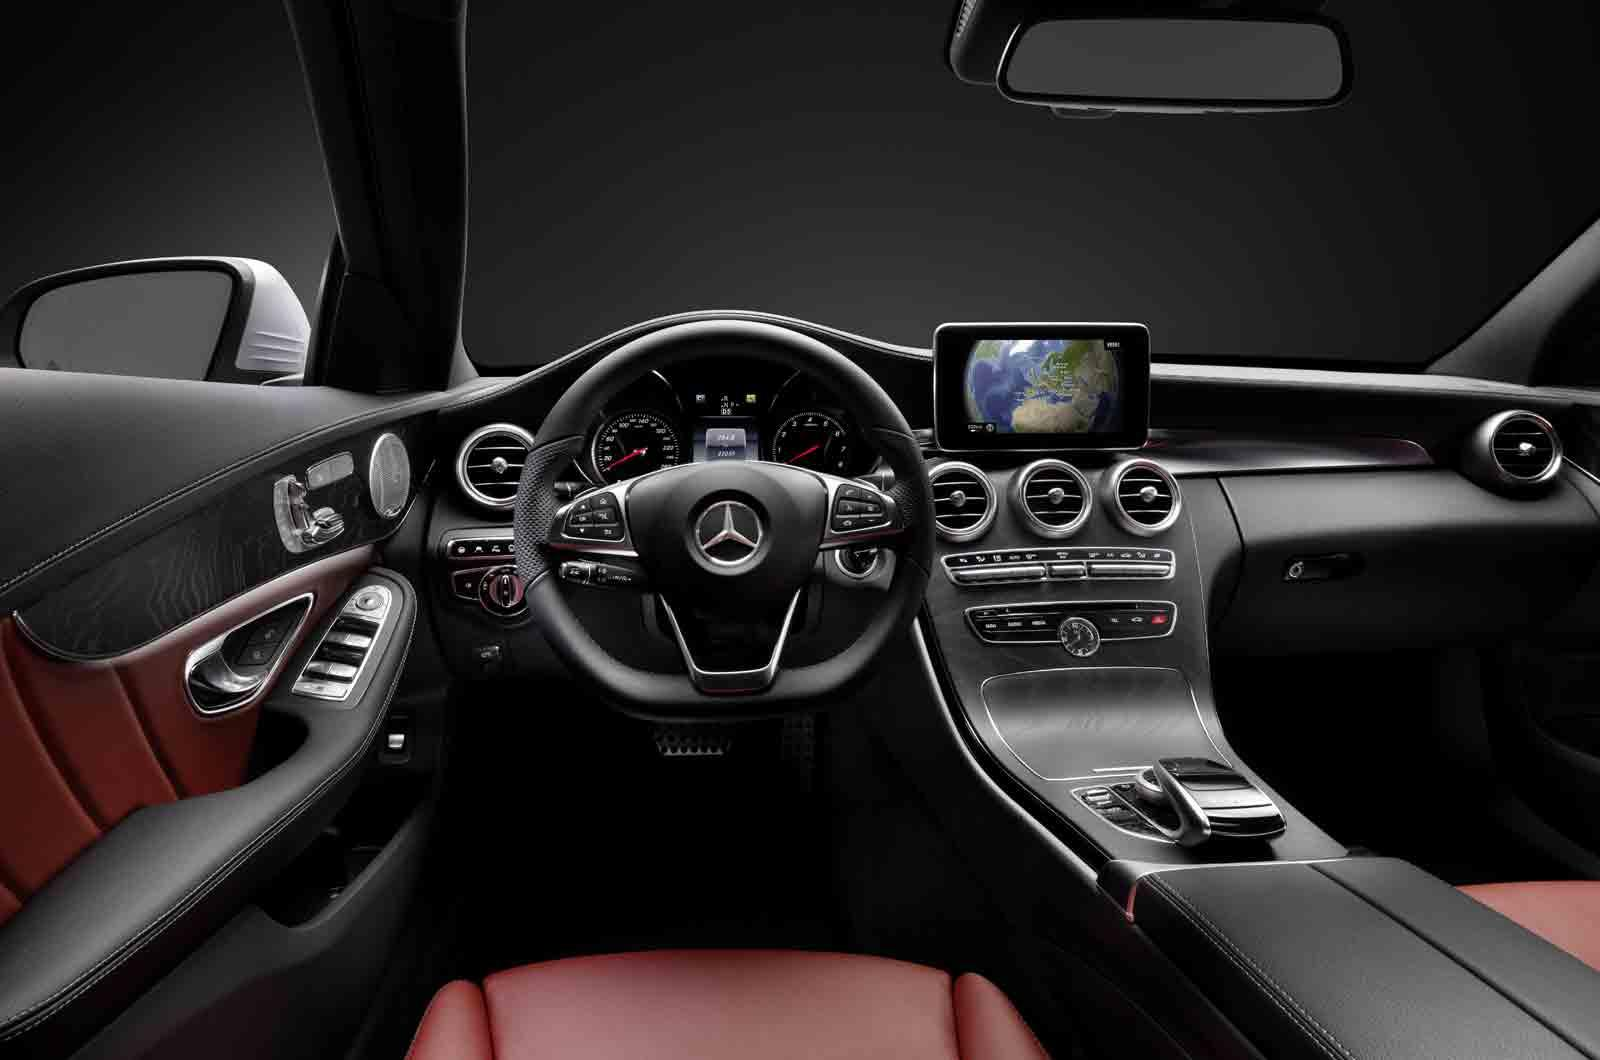 2014 mercedes benz c class interior dashboard. Black Bedroom Furniture Sets. Home Design Ideas